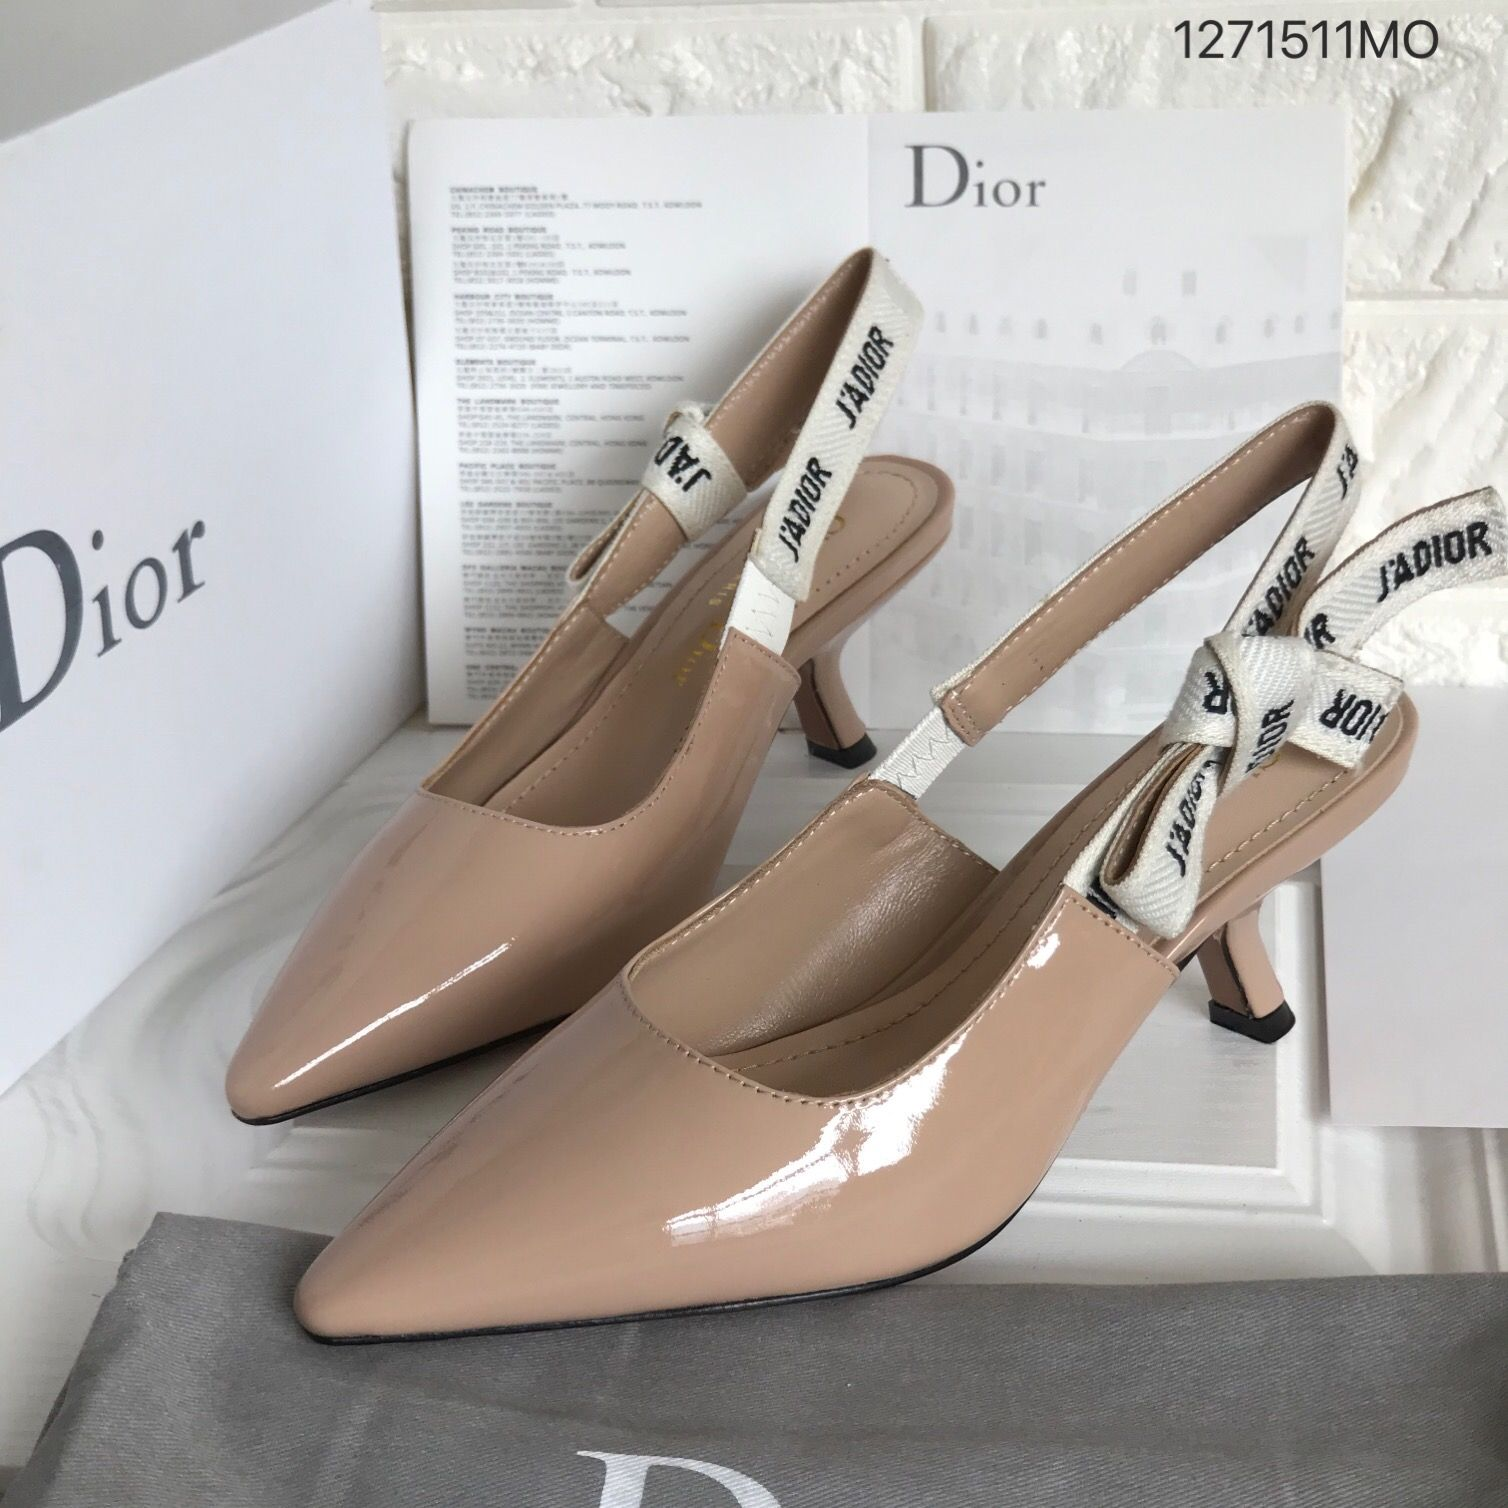 Christian Dior Woman Shoes Short Kitten Heels Sandals With Jadior Ribbon Strap Patent Leather Beige Kitten Heel Sandals Shoes Dior Shoes